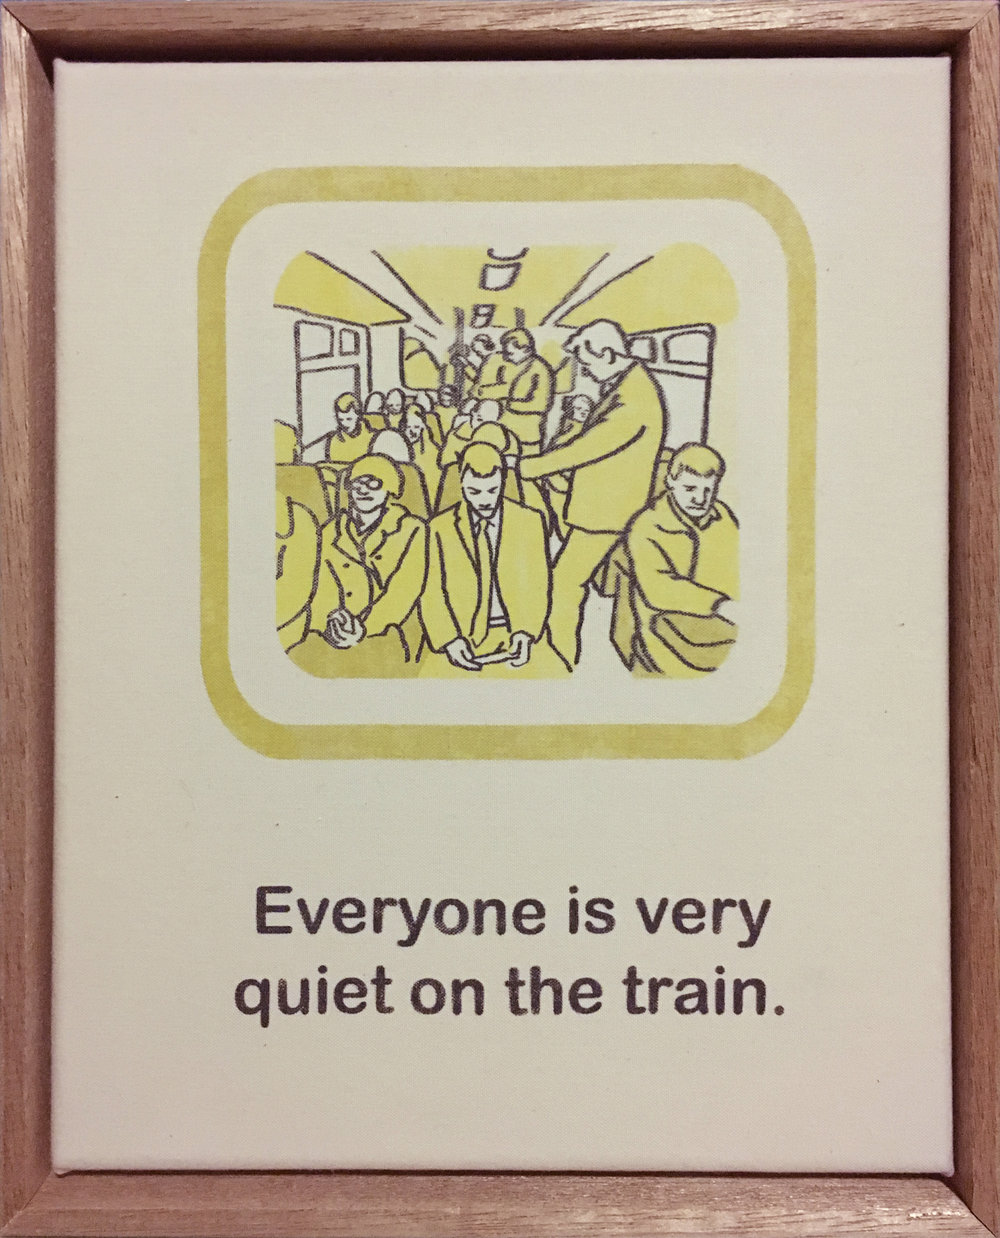 Everyone is very quiet on the train.